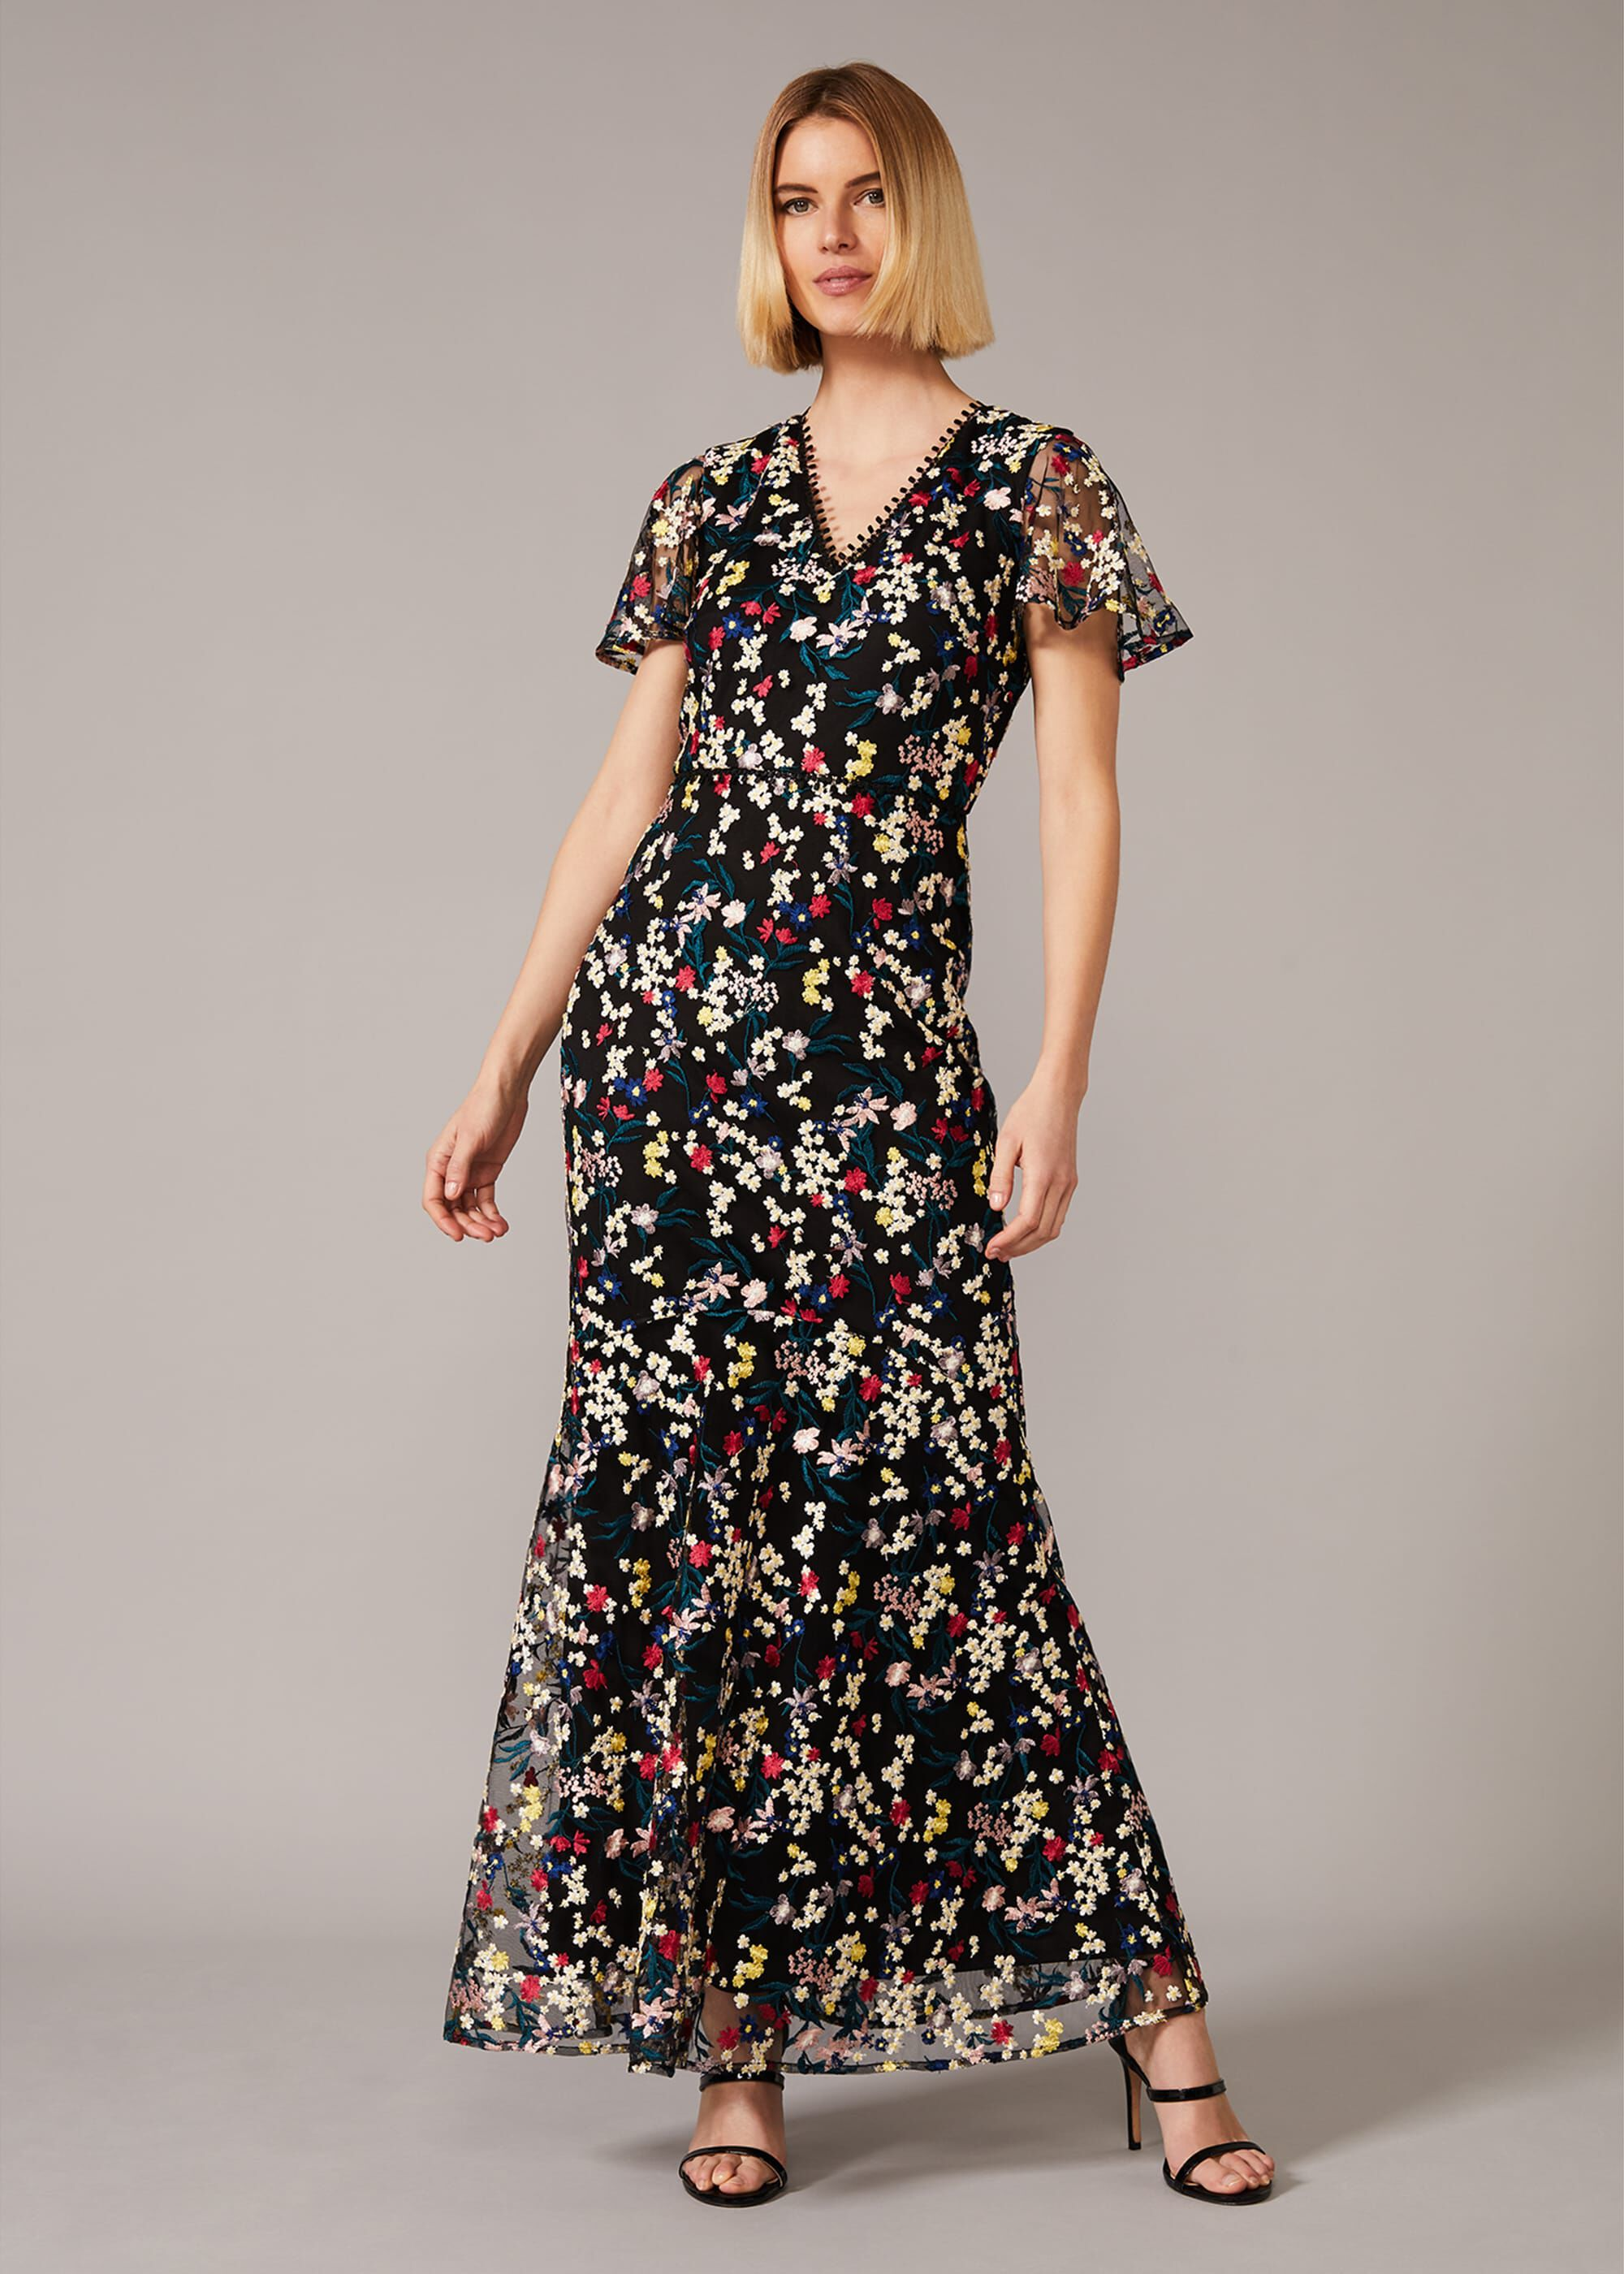 Phase Eight Daiva Embroidered Fishtail Dress, Multicoloured, Maxi, Occasion Dress